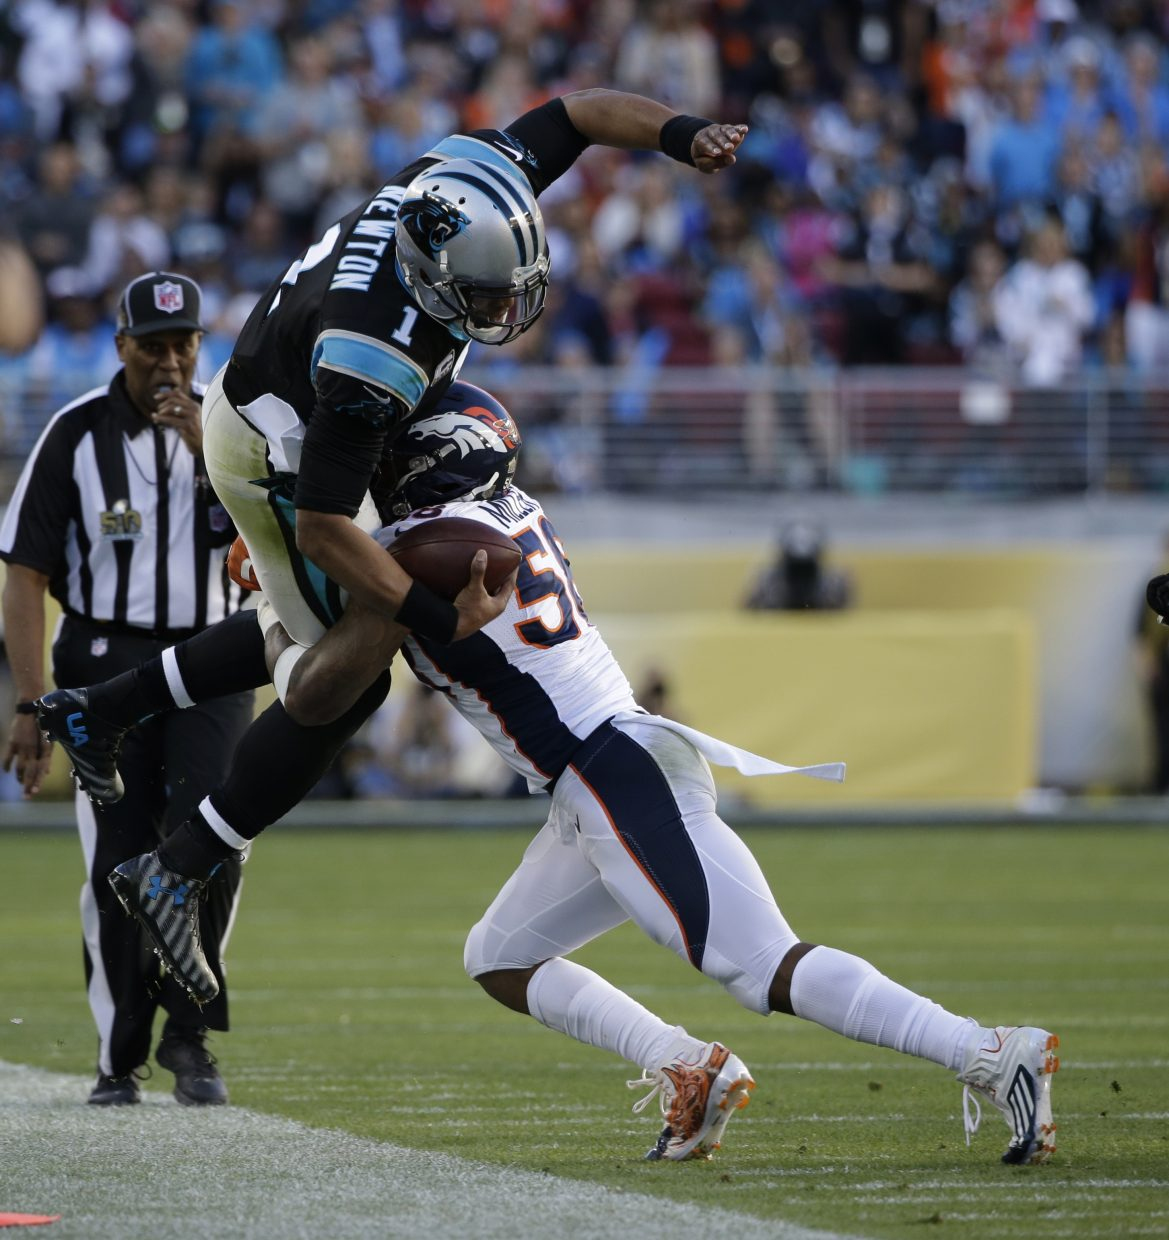 Denver Broncos' Von Miller (58) tackles Carolina Panthers' Cam Newton (1) on a run during the first half of the NFL Super Bowl 50 football game Sunday, Feb. 7, 2016, in Santa Clara, Calif. (AP Photo/Marcio Jose Sanchez)